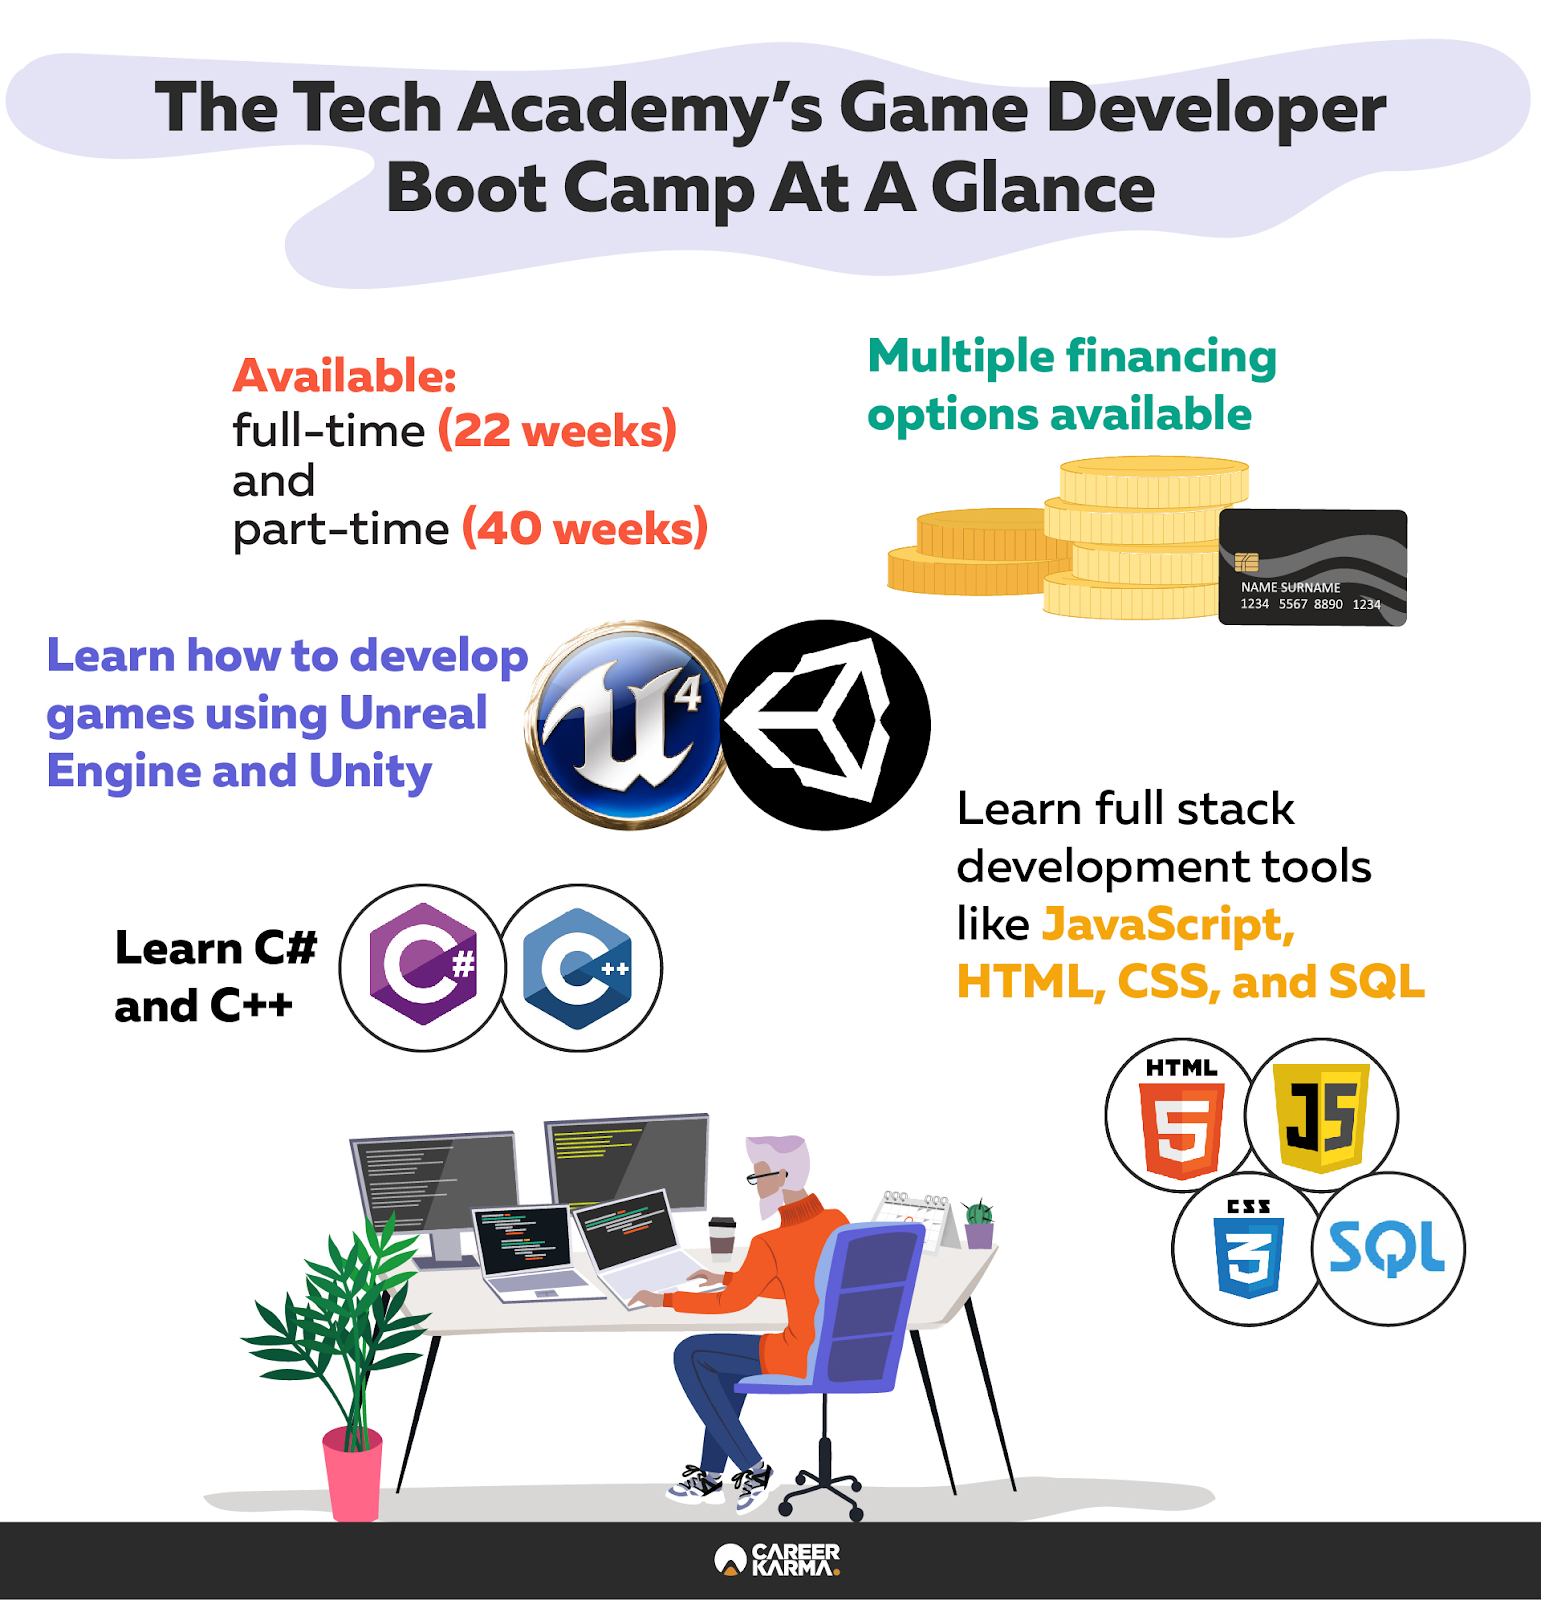 Infographic covering The Tech Academy's Game Developer boot camp